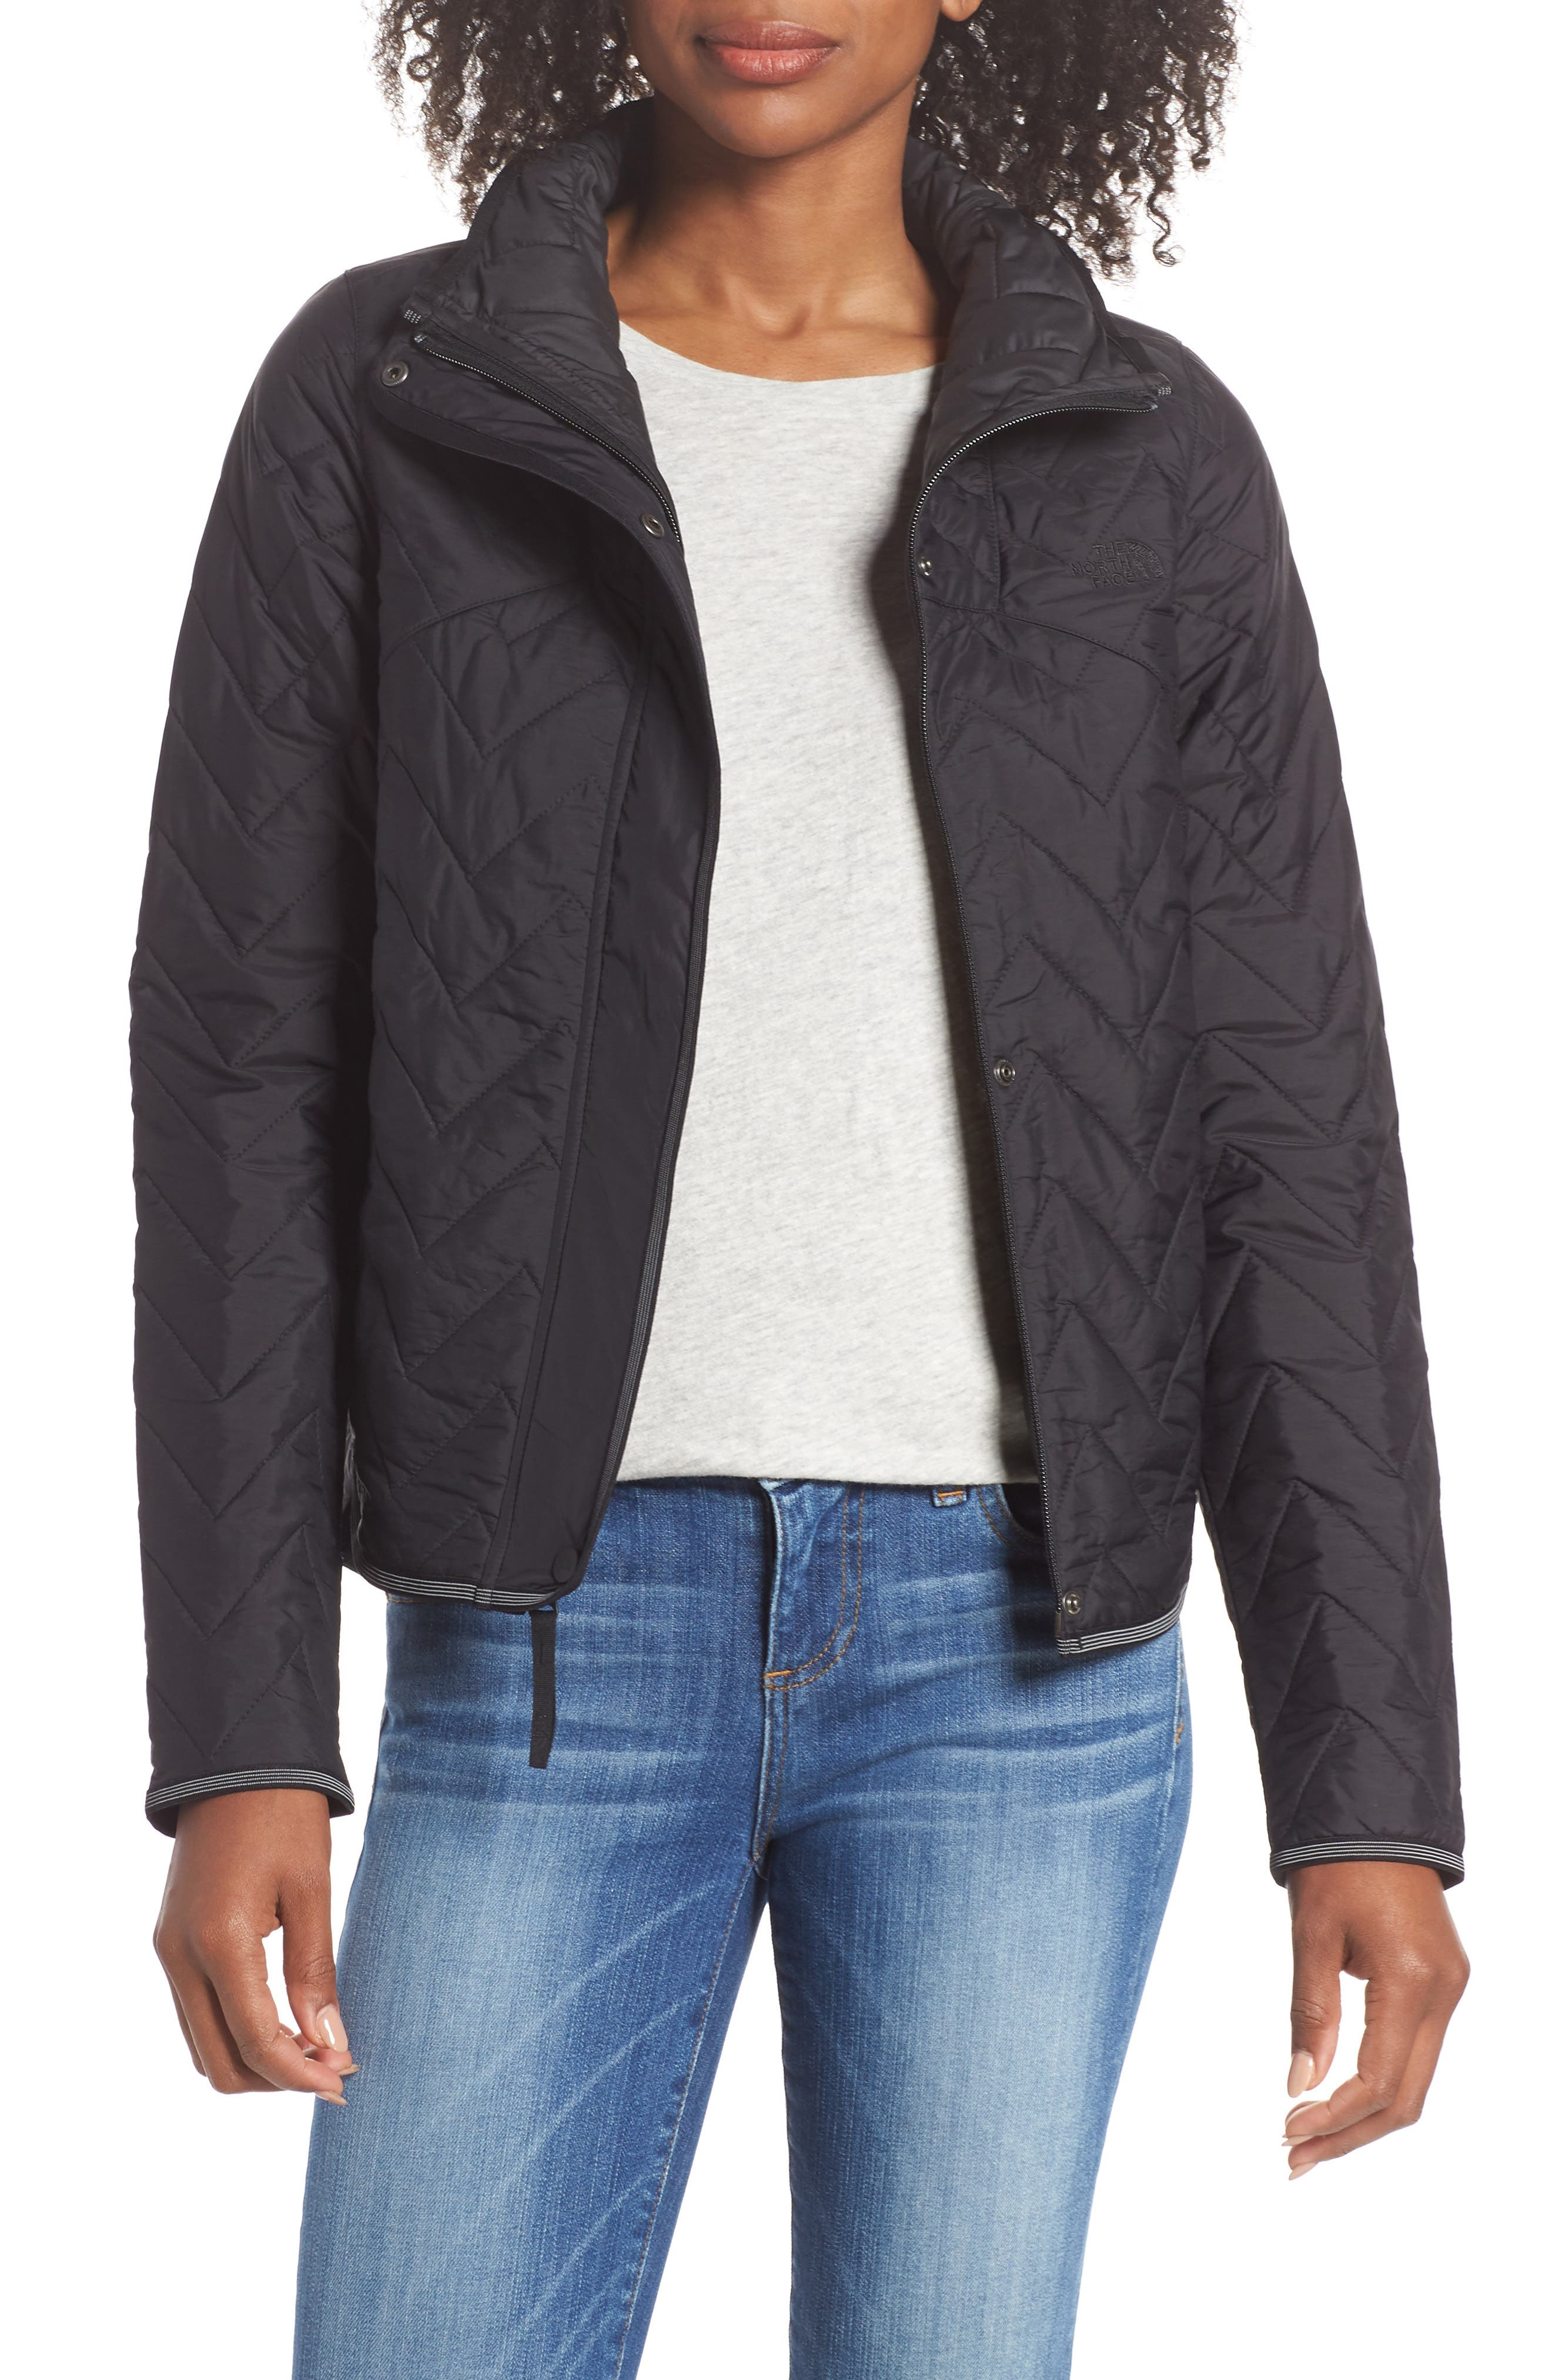 Westborough Insulated Jacket,                         Main,                         color, 001